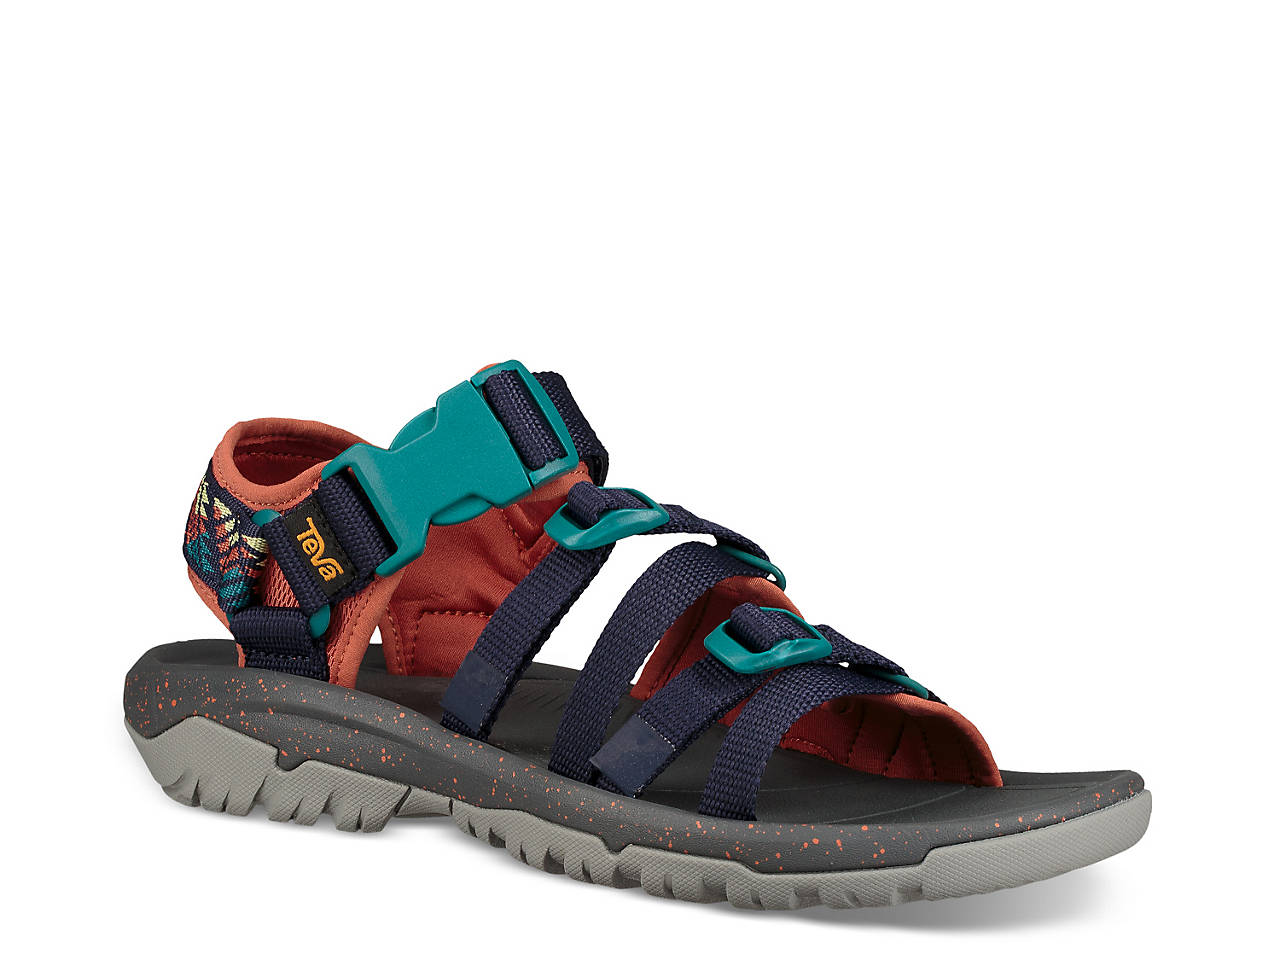 a5908495bbab1 Teva Hurricane XLT2 Alp Sandal Men s Shoes